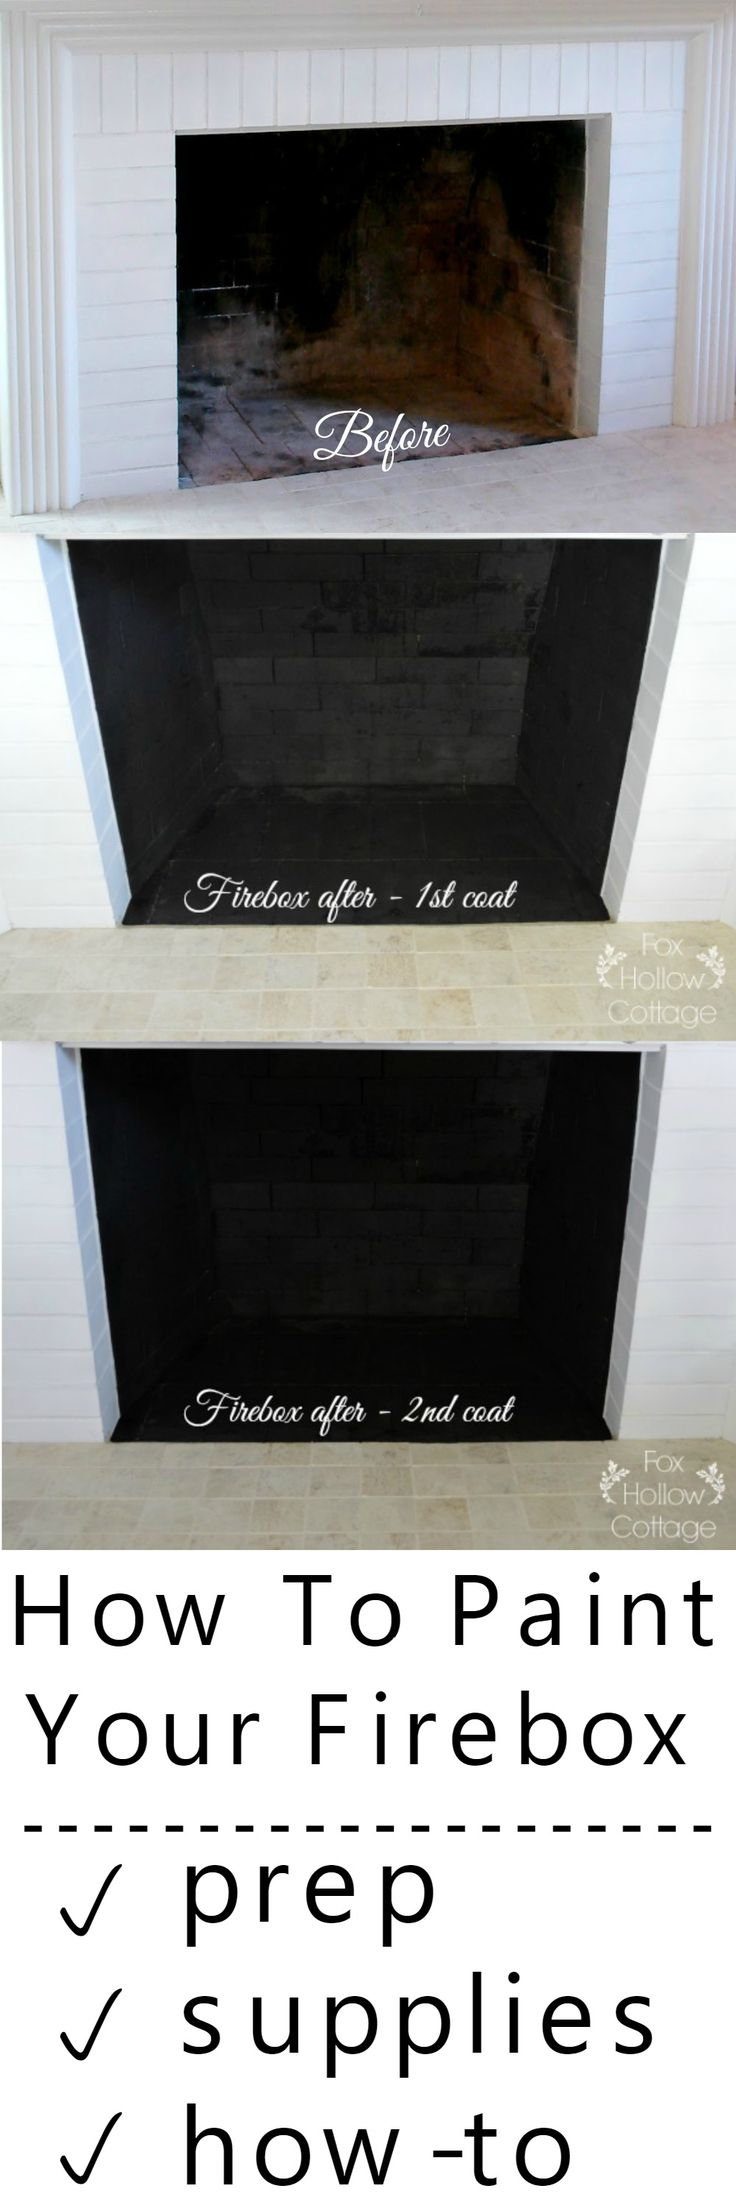 Make your fireplace look like new! How to paint a firebox. DIY home improvement. Get ready for the chilly days of Fall and Winter!